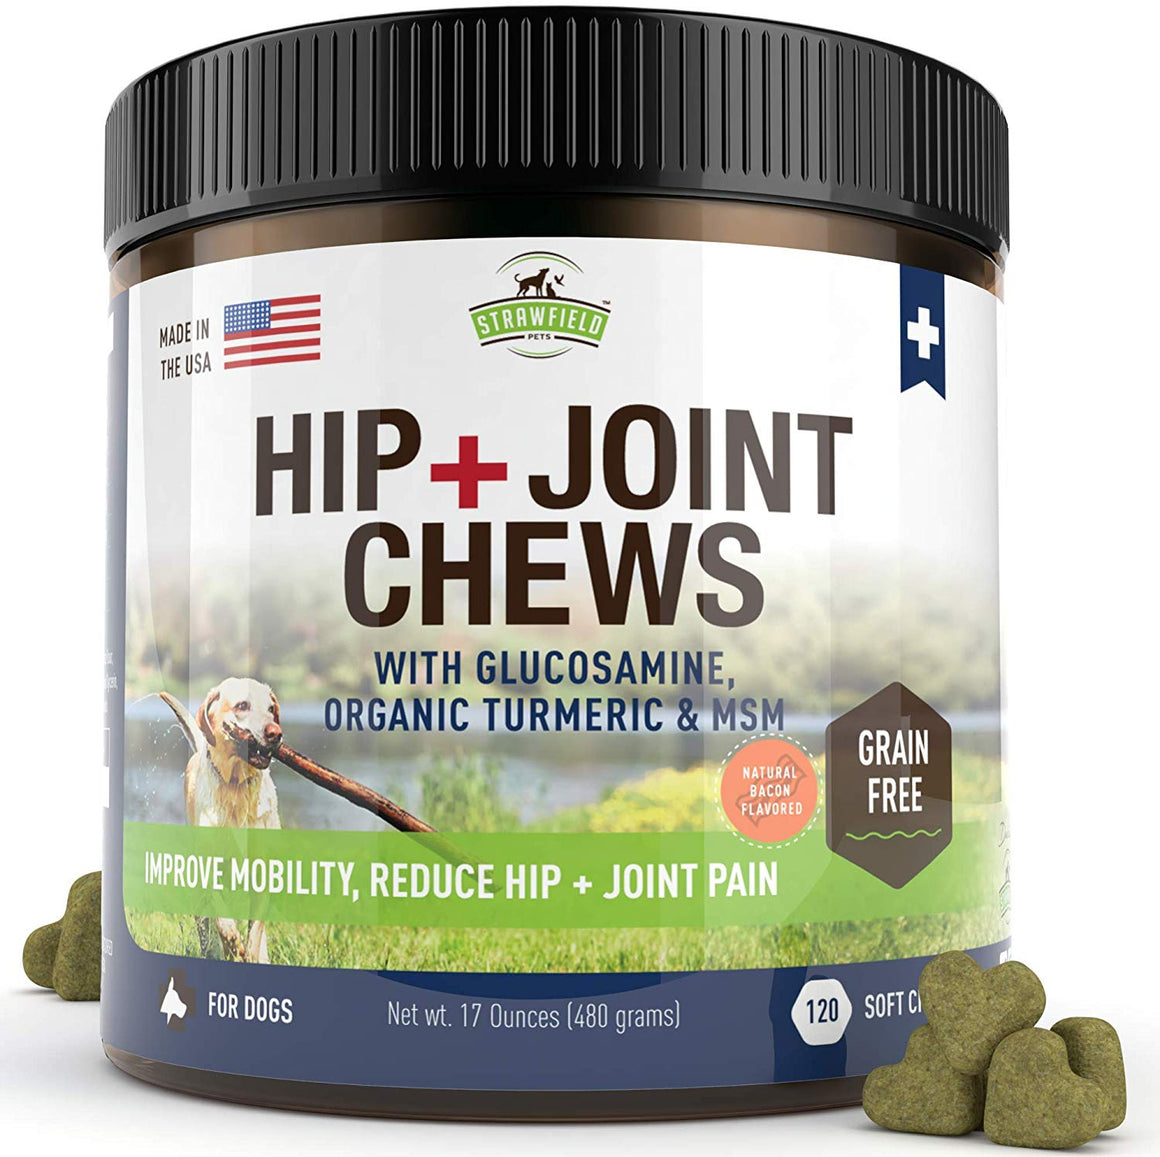 Hip + Joint Chews with Glucosamine Chondroitin, MSM, Organic Turmeric Soft Chews, 120-Count